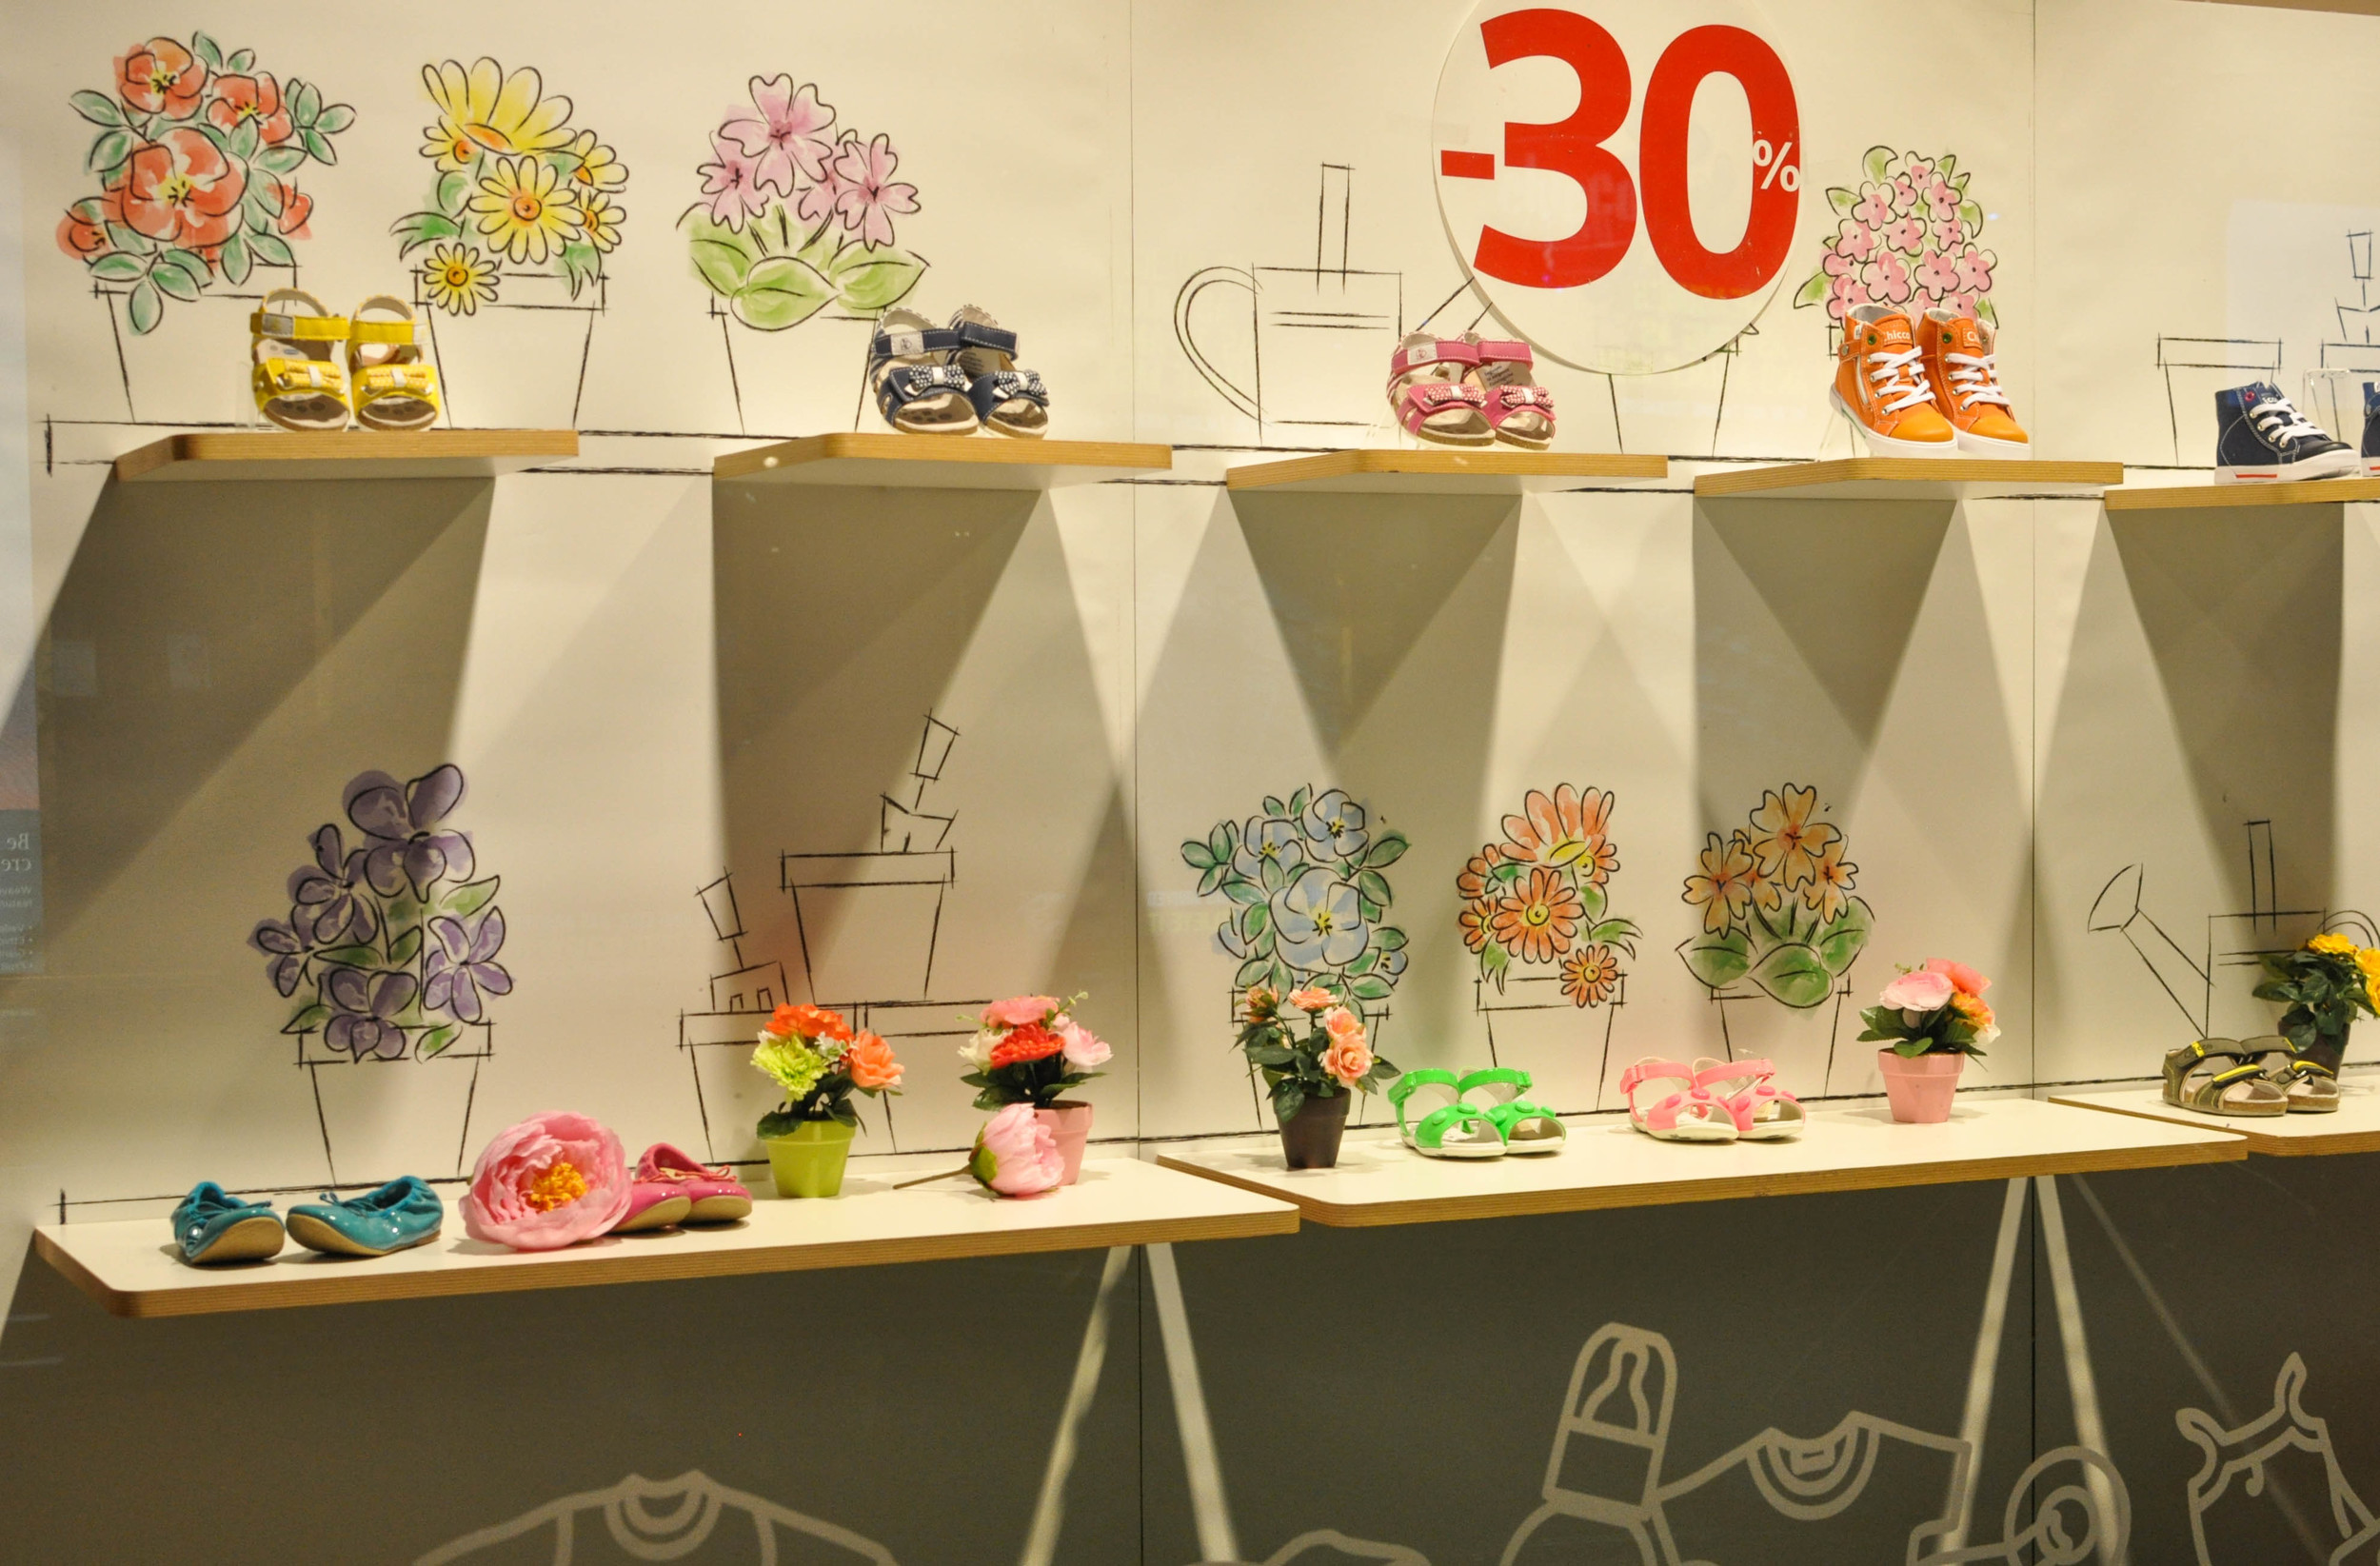 CHICCO    Chicco's summer shoe display was supported by simple yet cute hand-drawn art depicting a spring/summer garden scene. The material used was thick butchers-type paper in panels. Coloured pots of fake flowers also enlivened the scene.